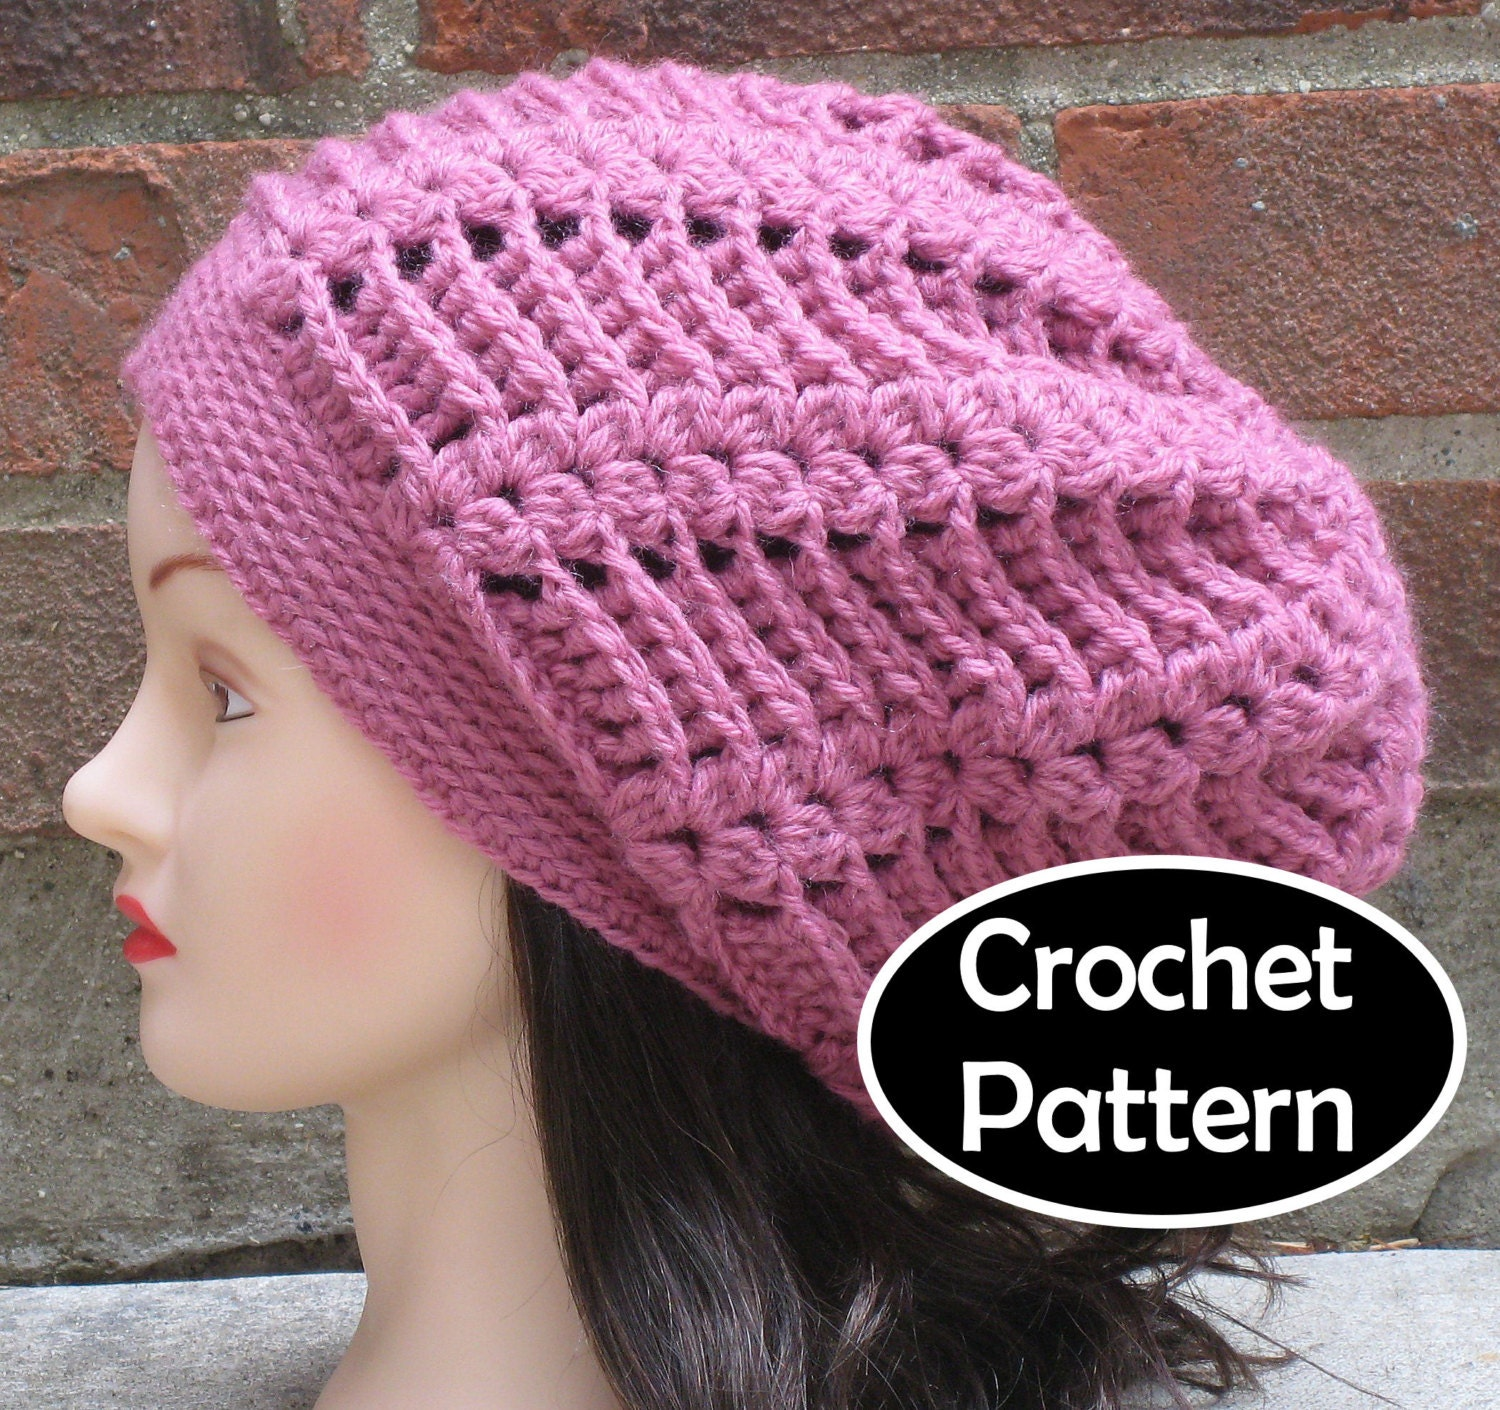 Crochet Hat Pattern Download : CROCHET HAT PATTERN Pdf Instant Download Gabrielle Slouchy